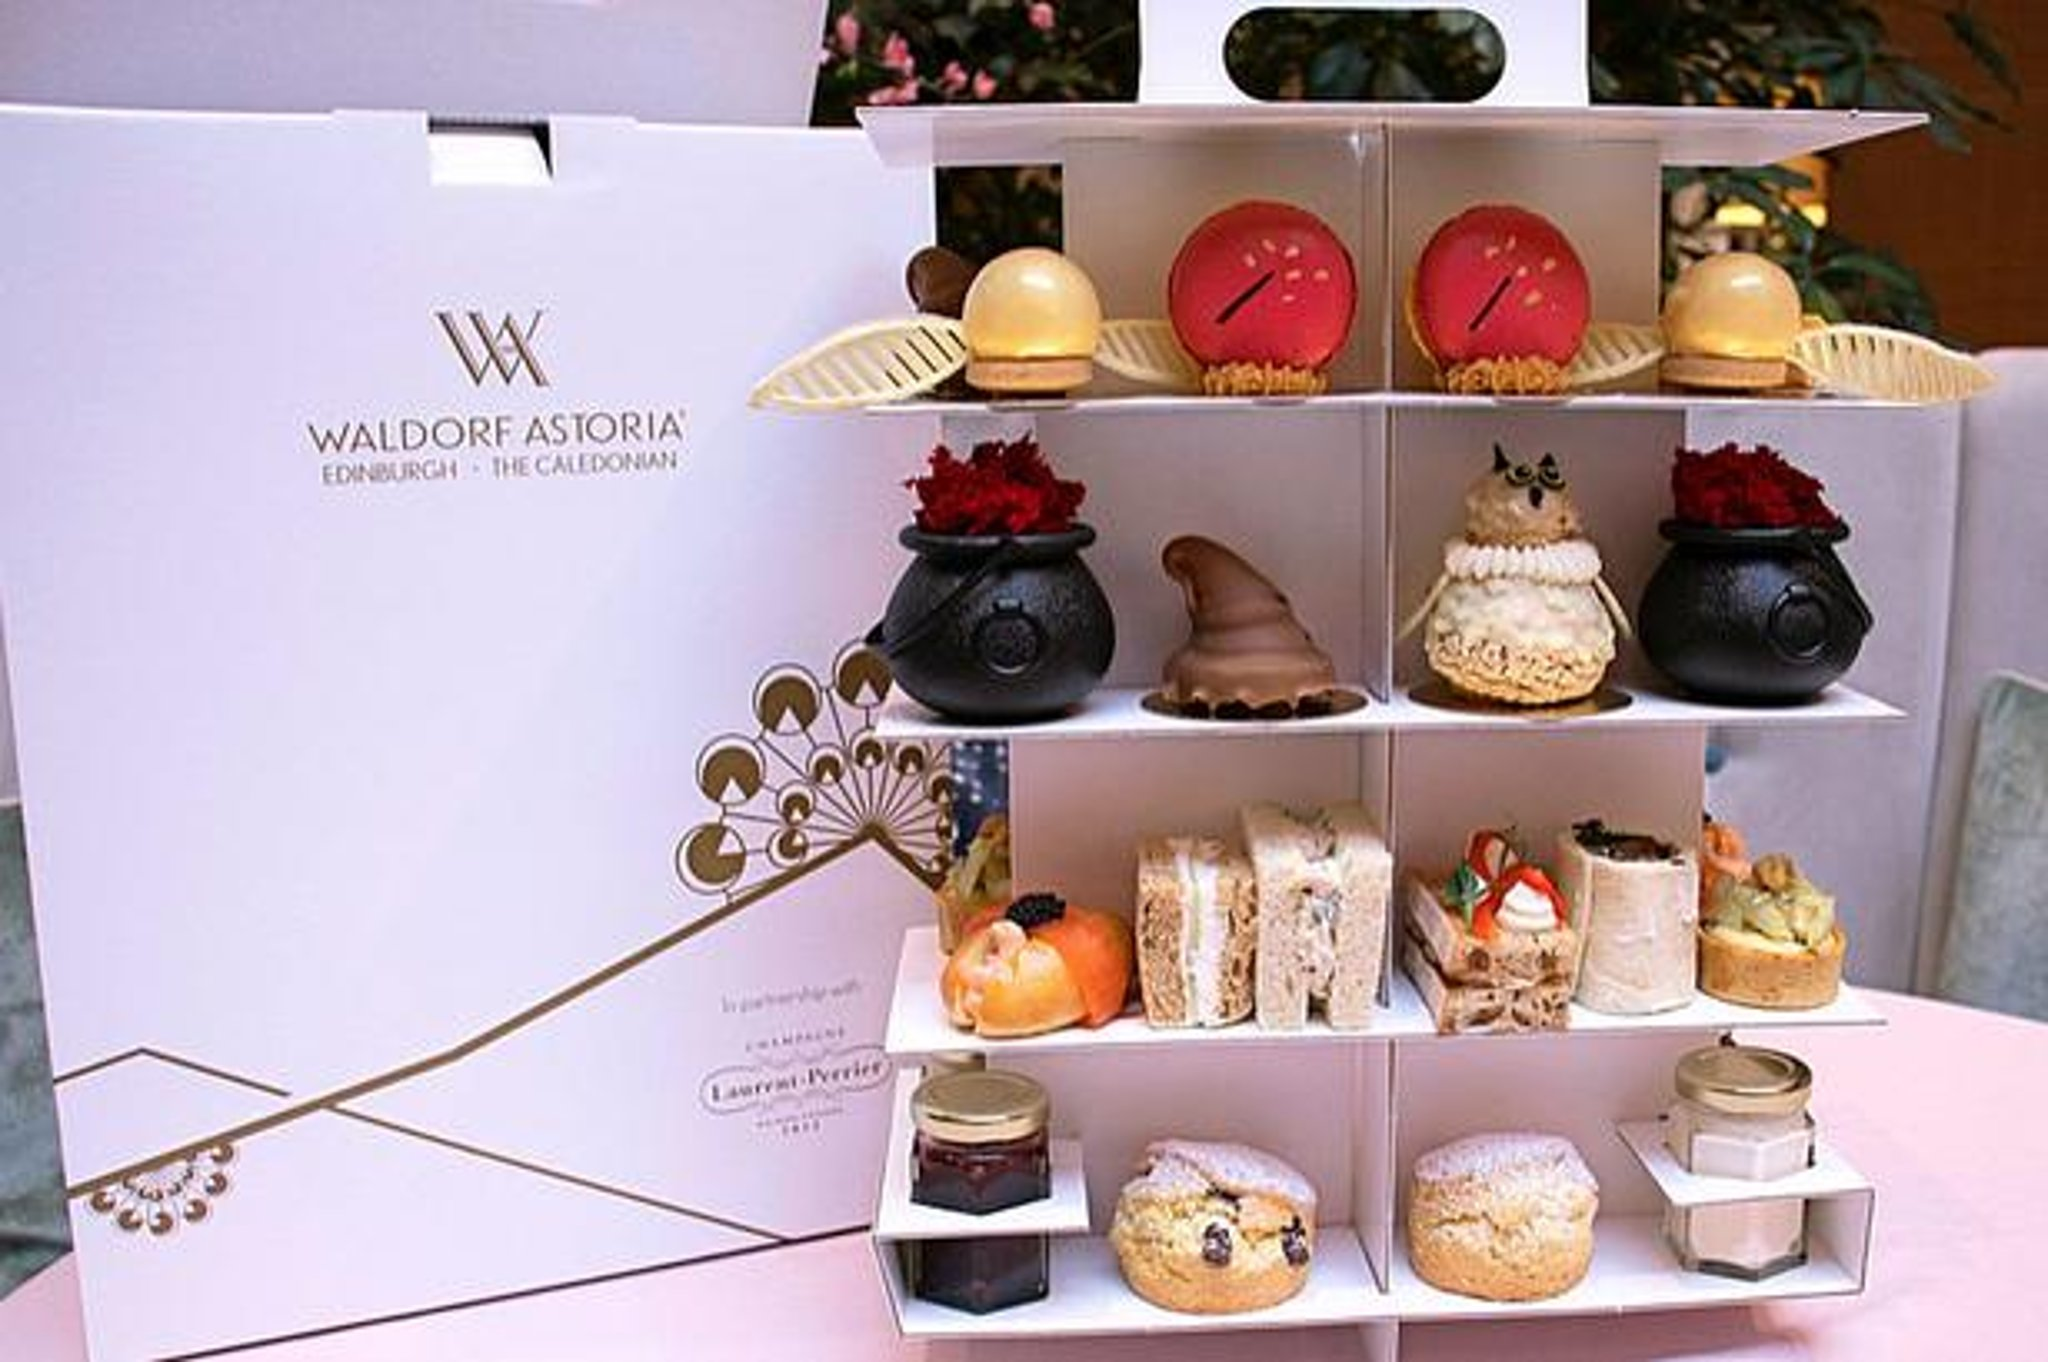 Harry Potter fans in Edinburgh can now have wizard-themed afternoon tea delivered